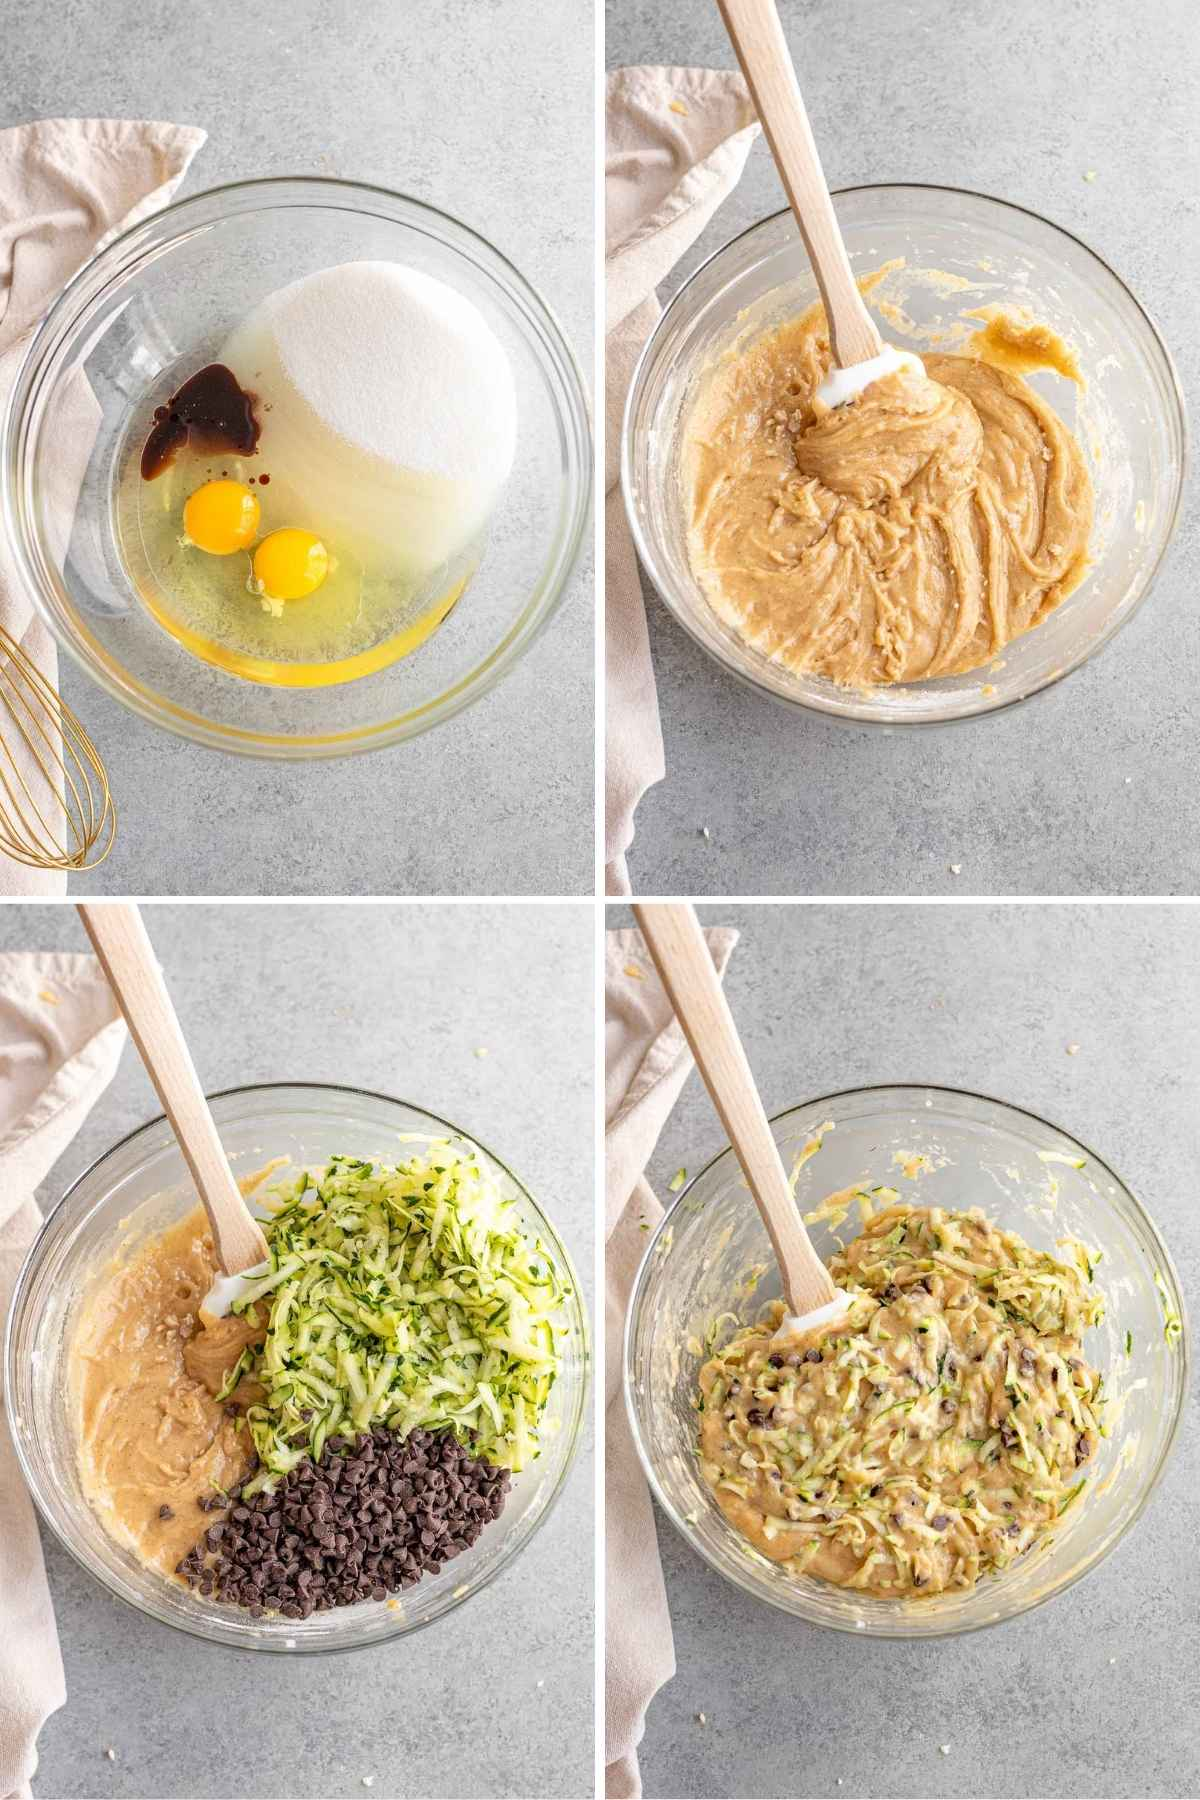 Chocolate Chip Zucchini Bread prep steps of mixing batter ingredients